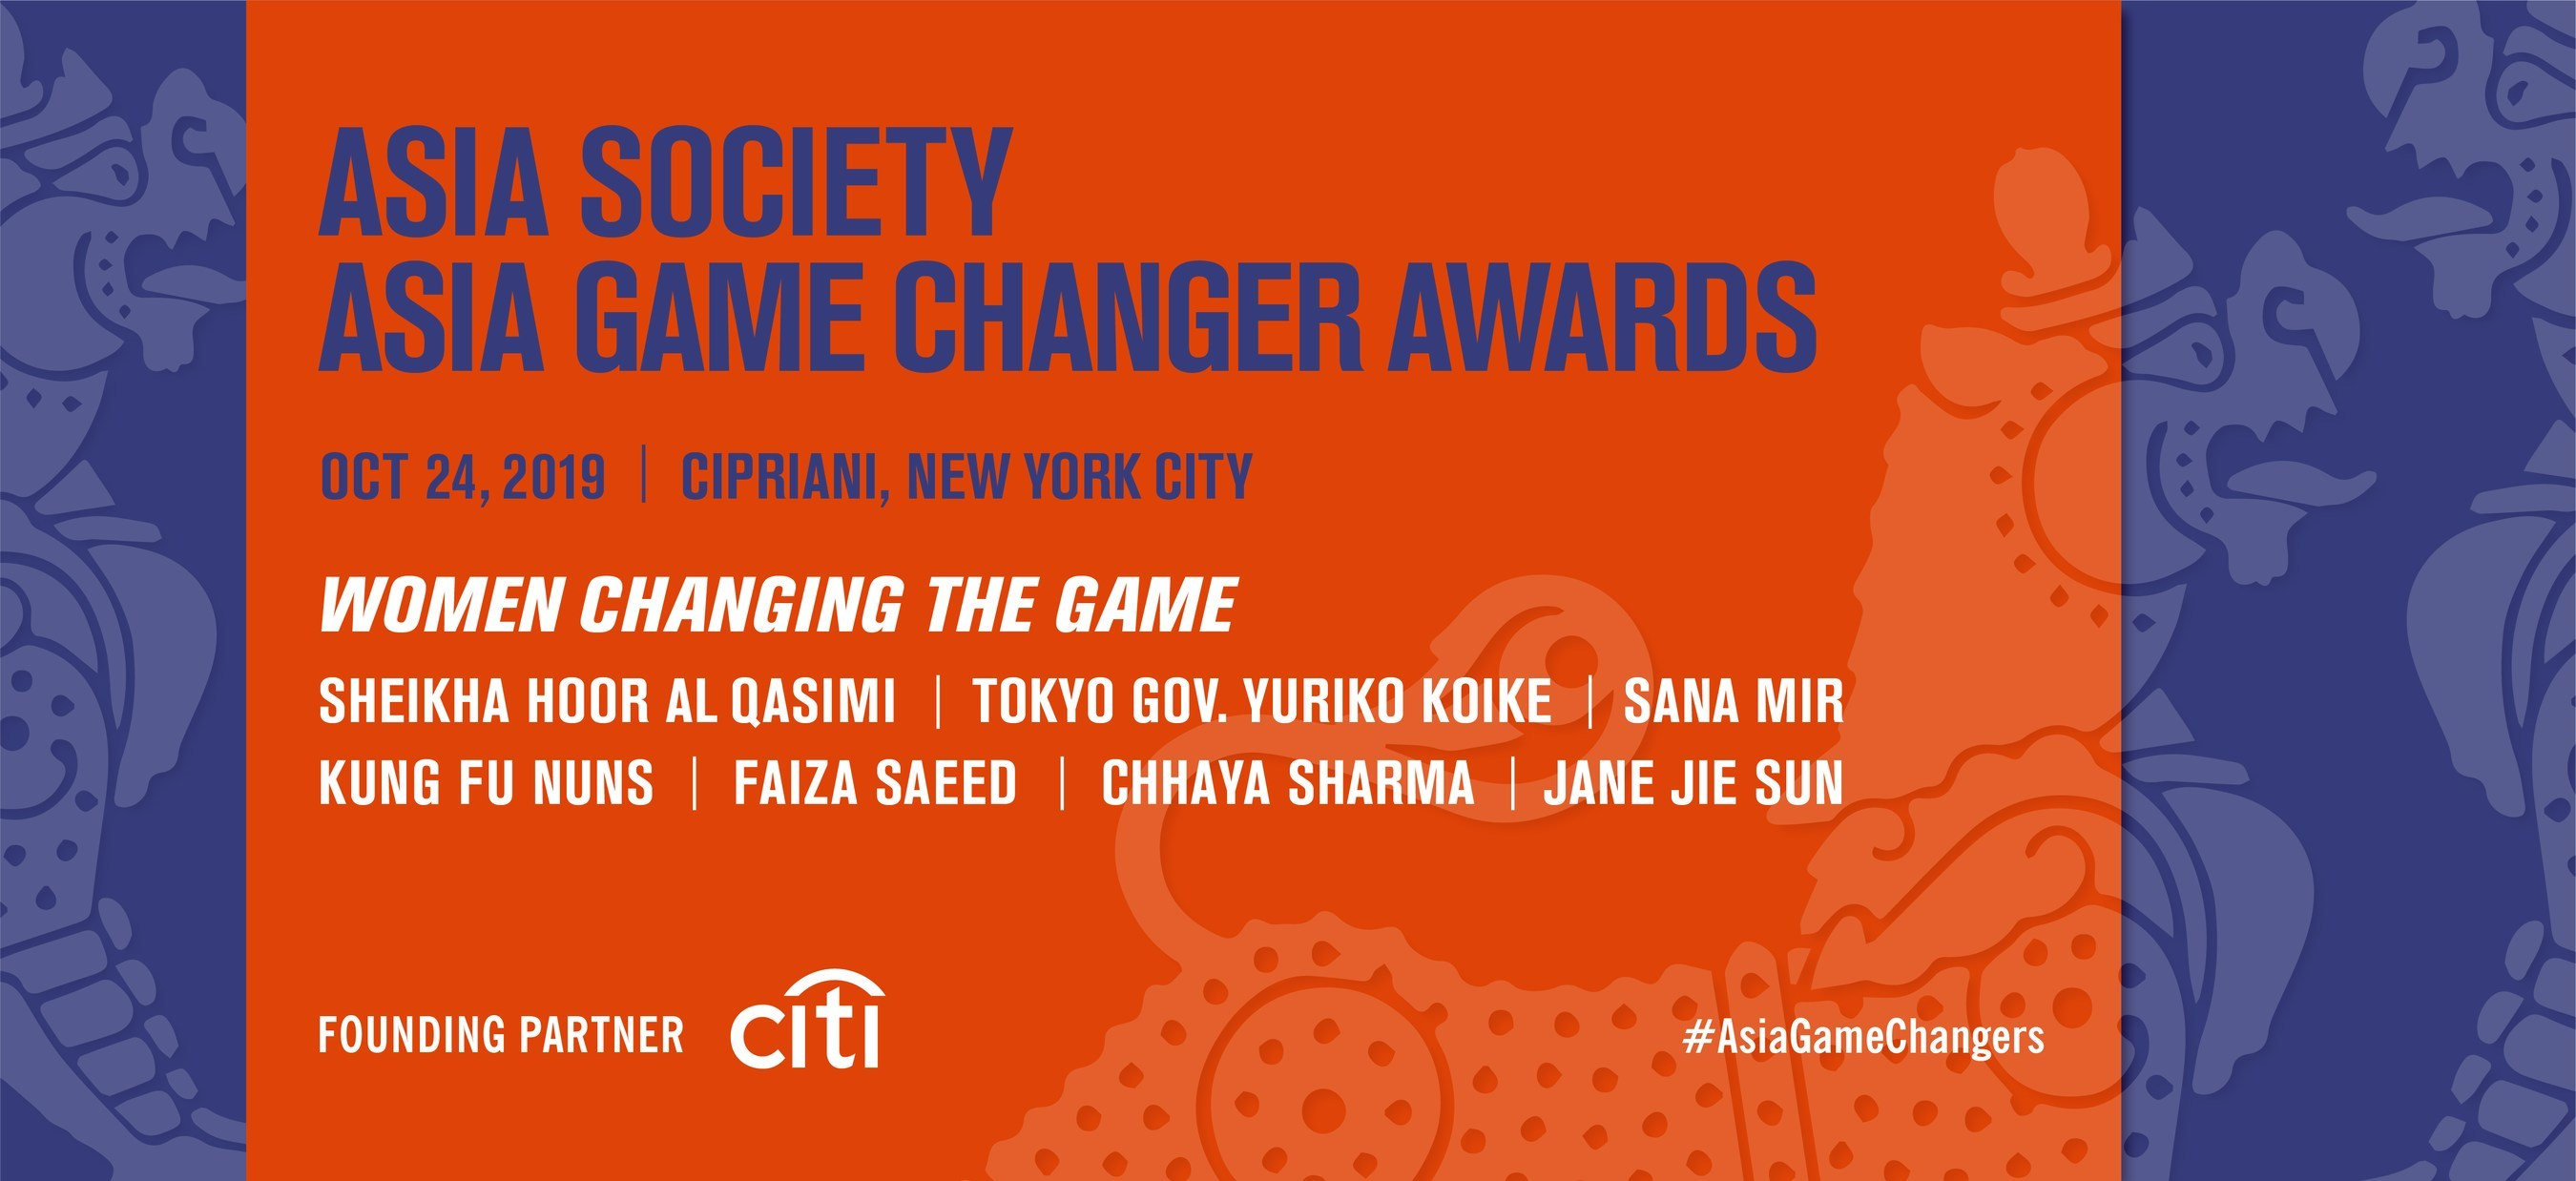 Asia Society Announces All-Female Asia Game Changer Awards